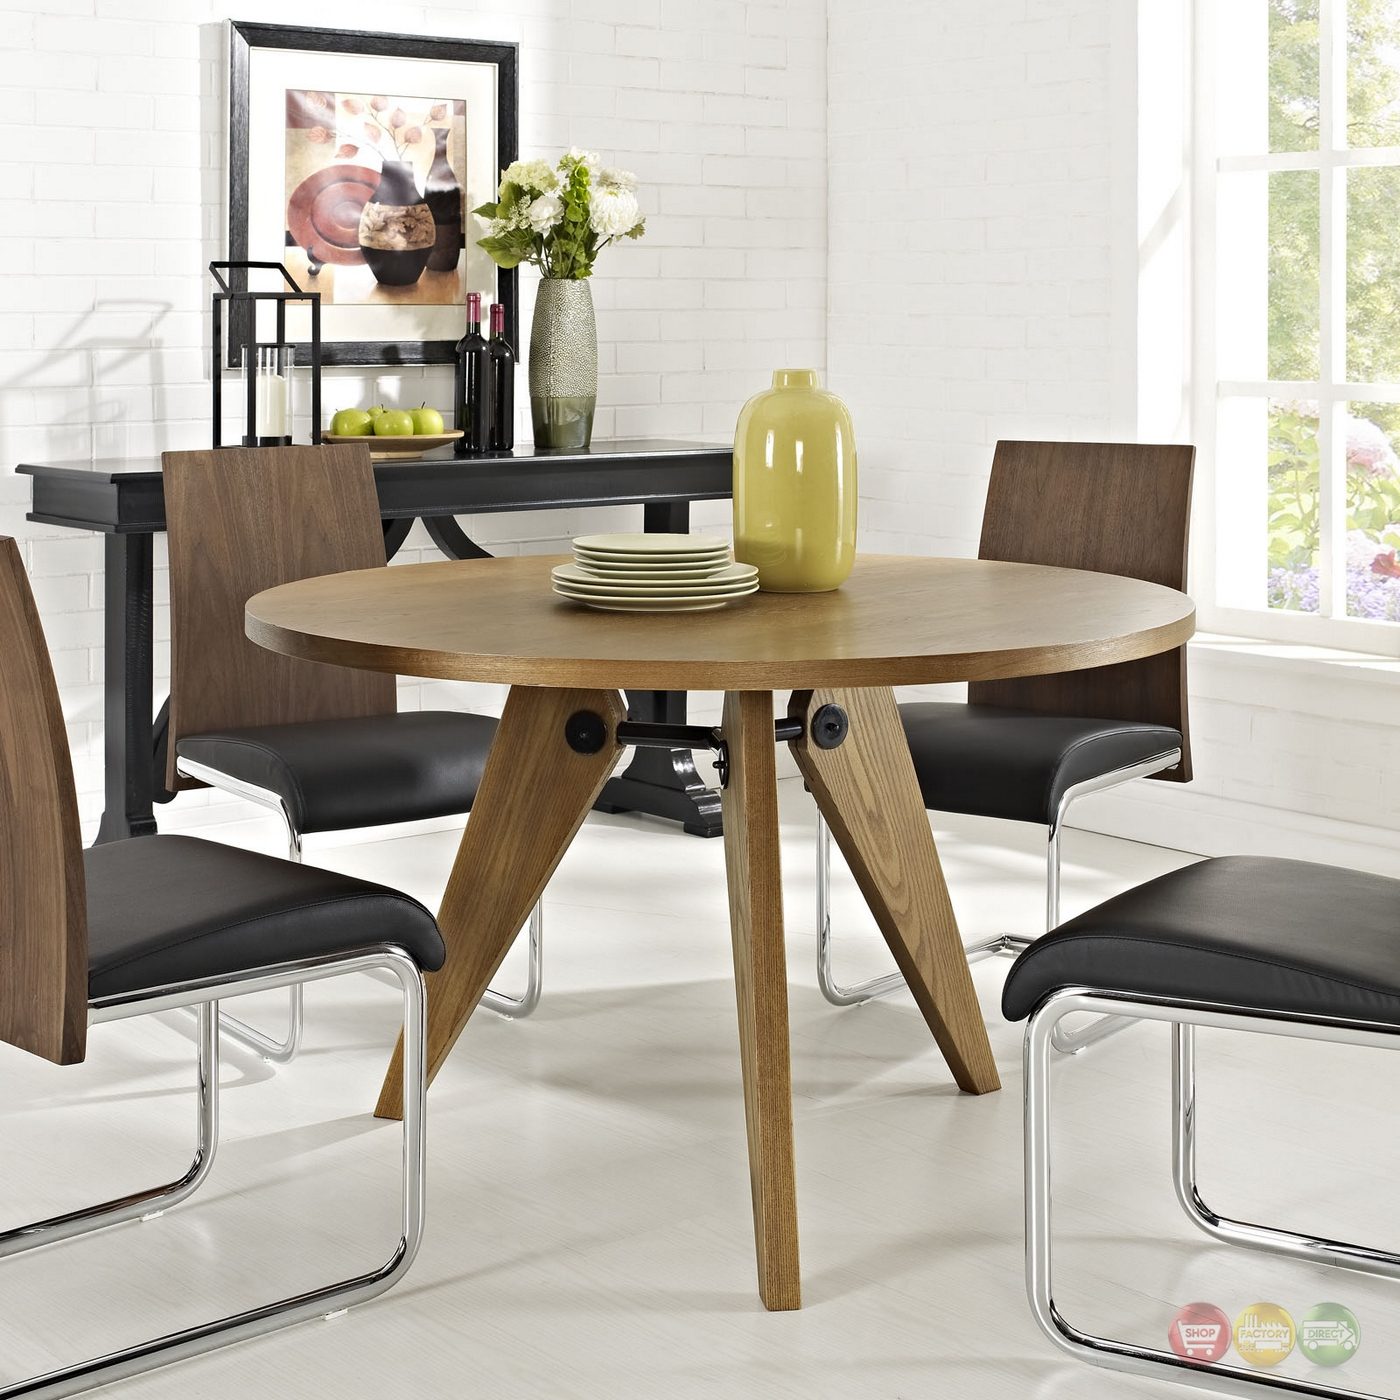 "Wood Round Dining Table: Laurel 47"" Round Dining Table In Natural Wood Finish, Walnut"